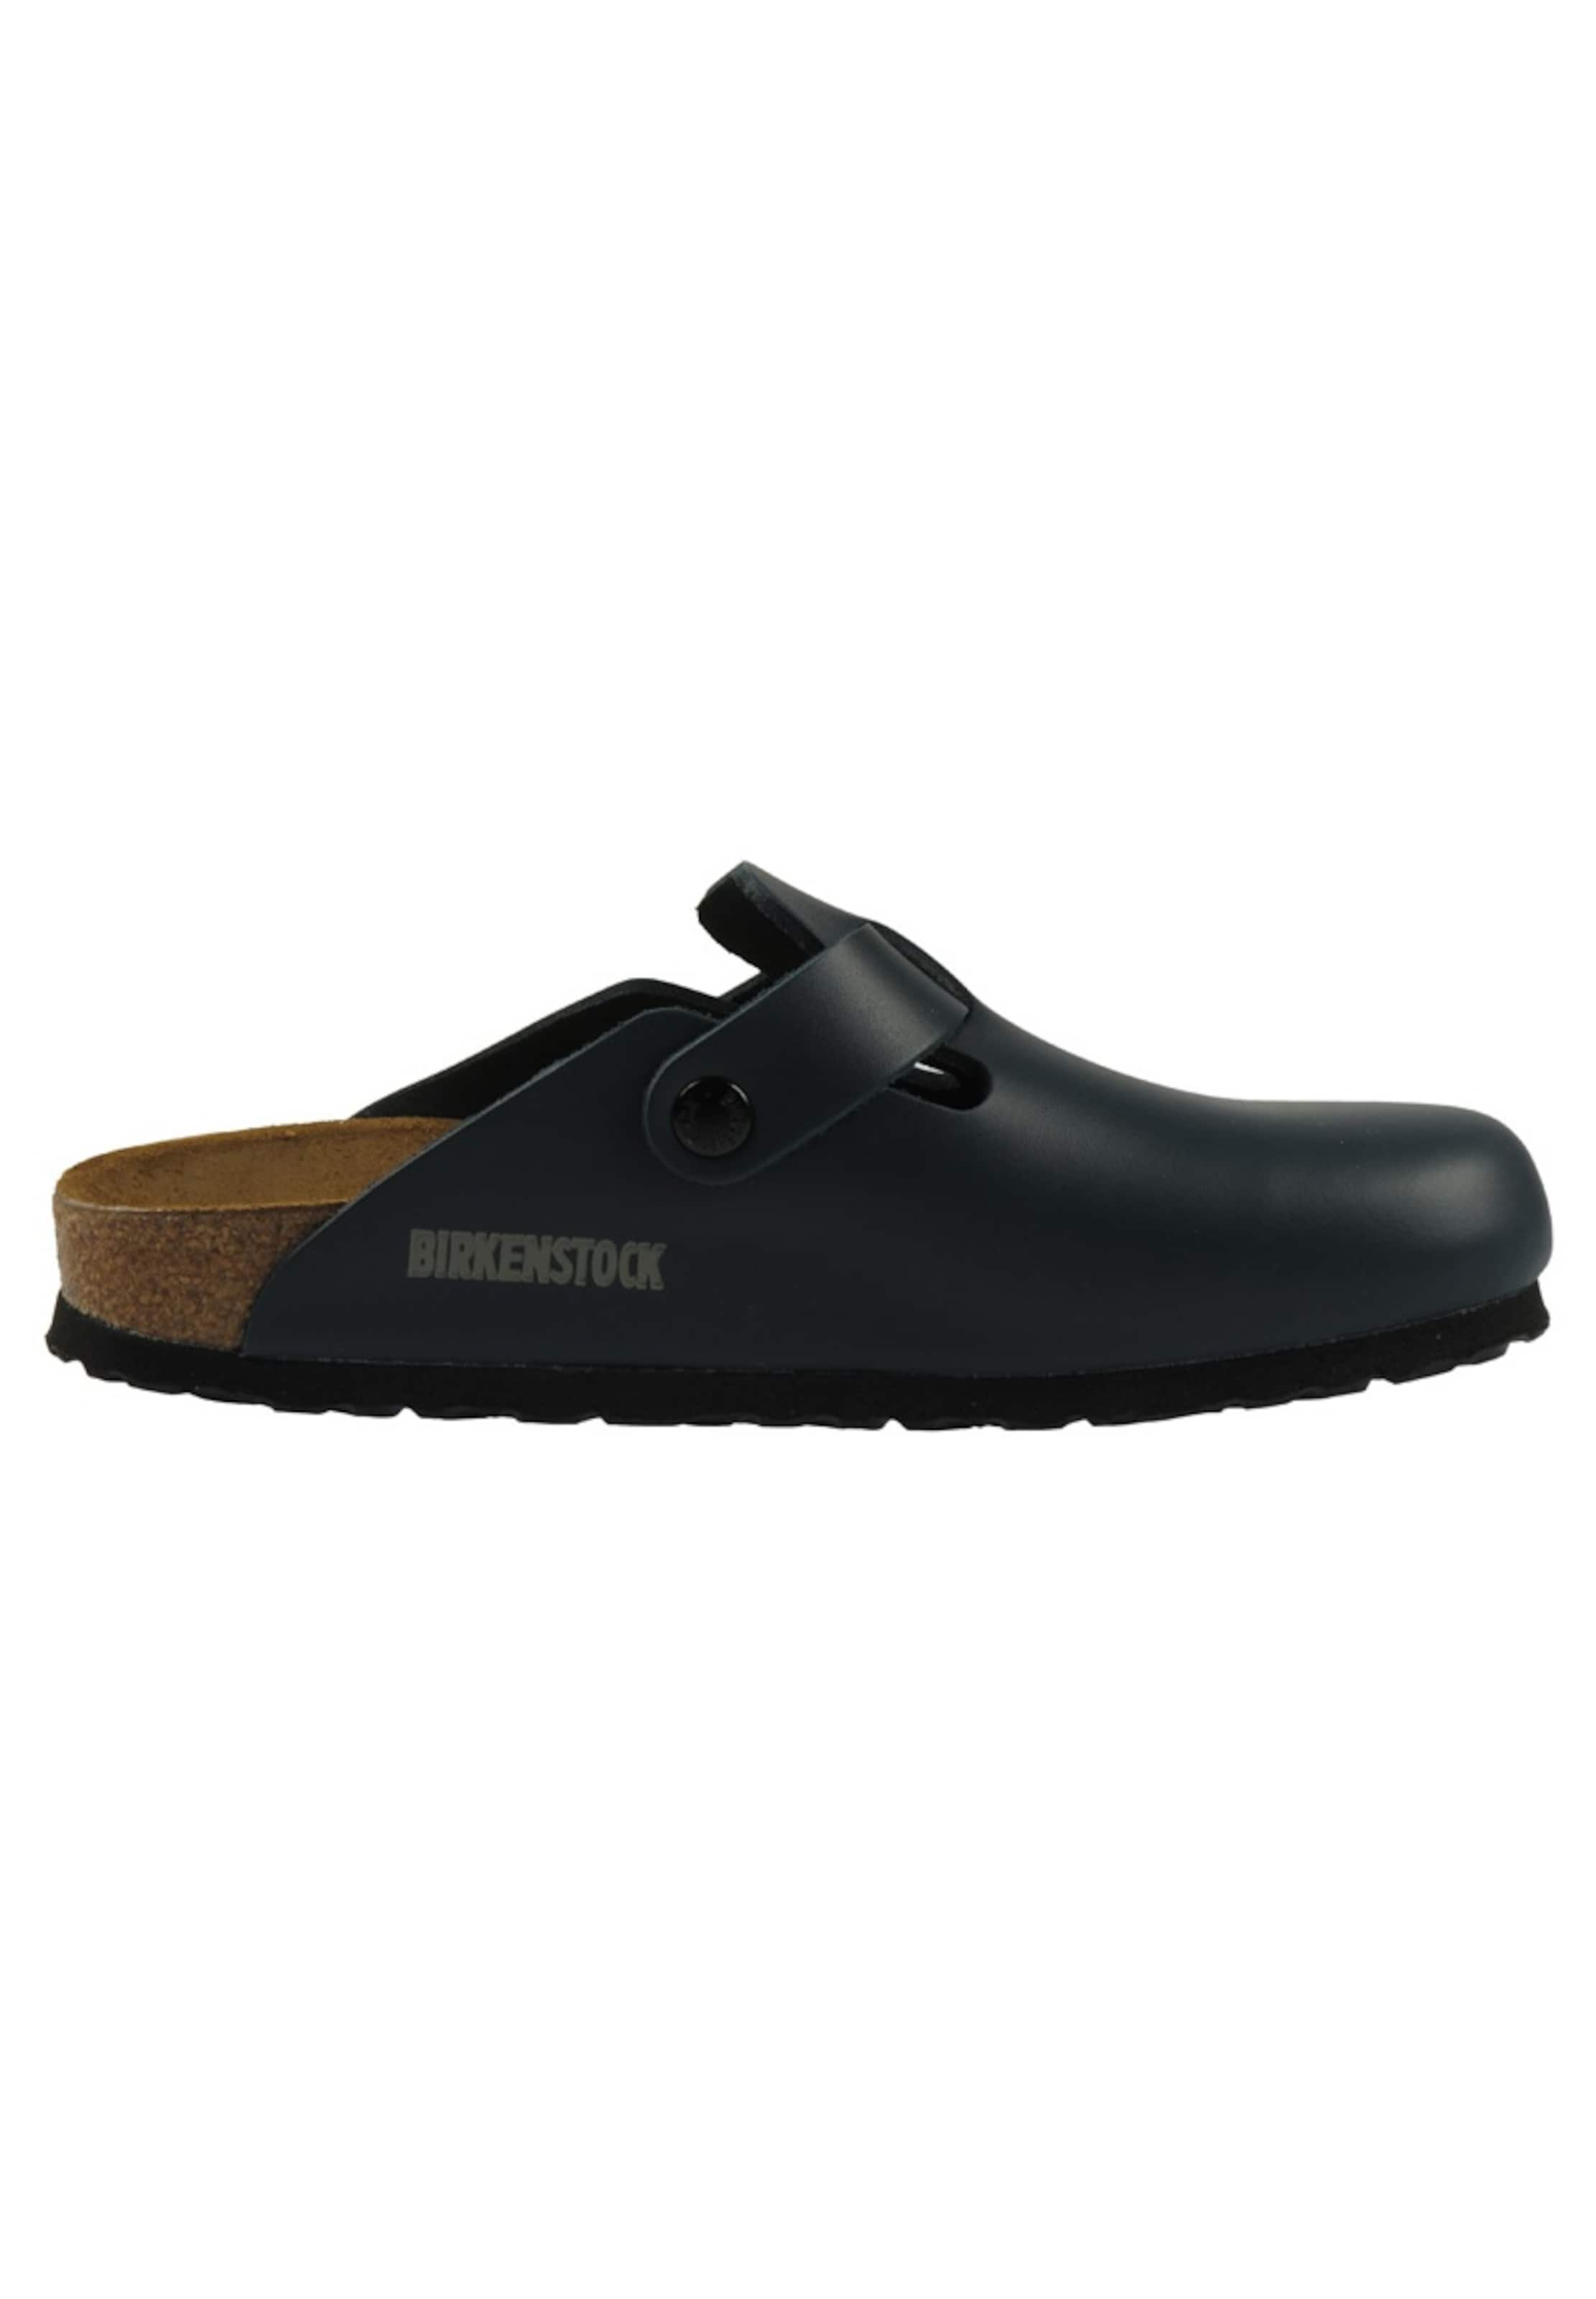 Birkenstock 'boston' Birkenstock Navy Clogs In Clogs In 'boston' Navy VpSUMqzG